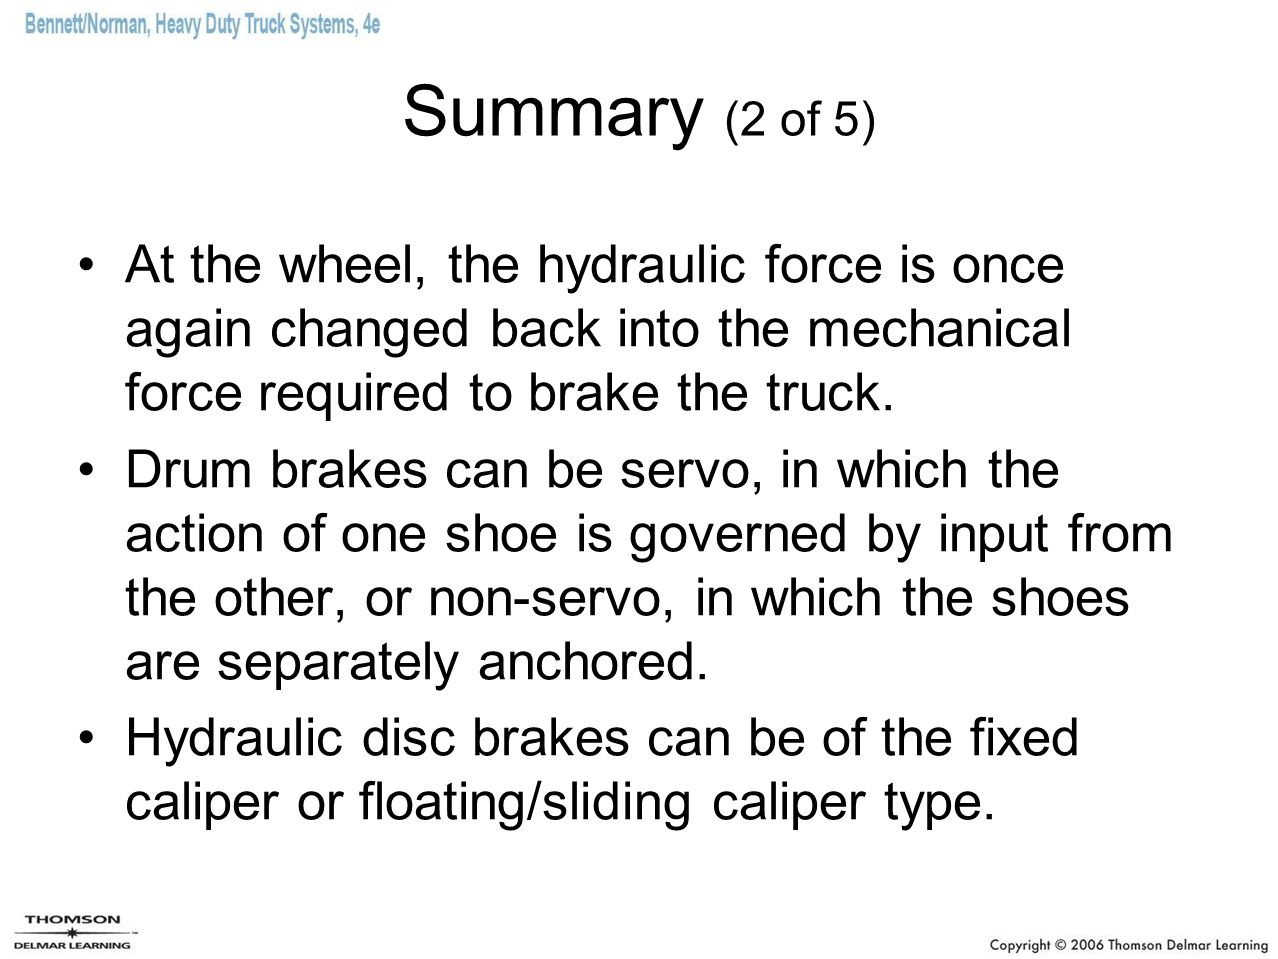 Summary (2 of 5) At the wheel, the hydraulic force is once again changed back into the mechanical force required to brake the truck.